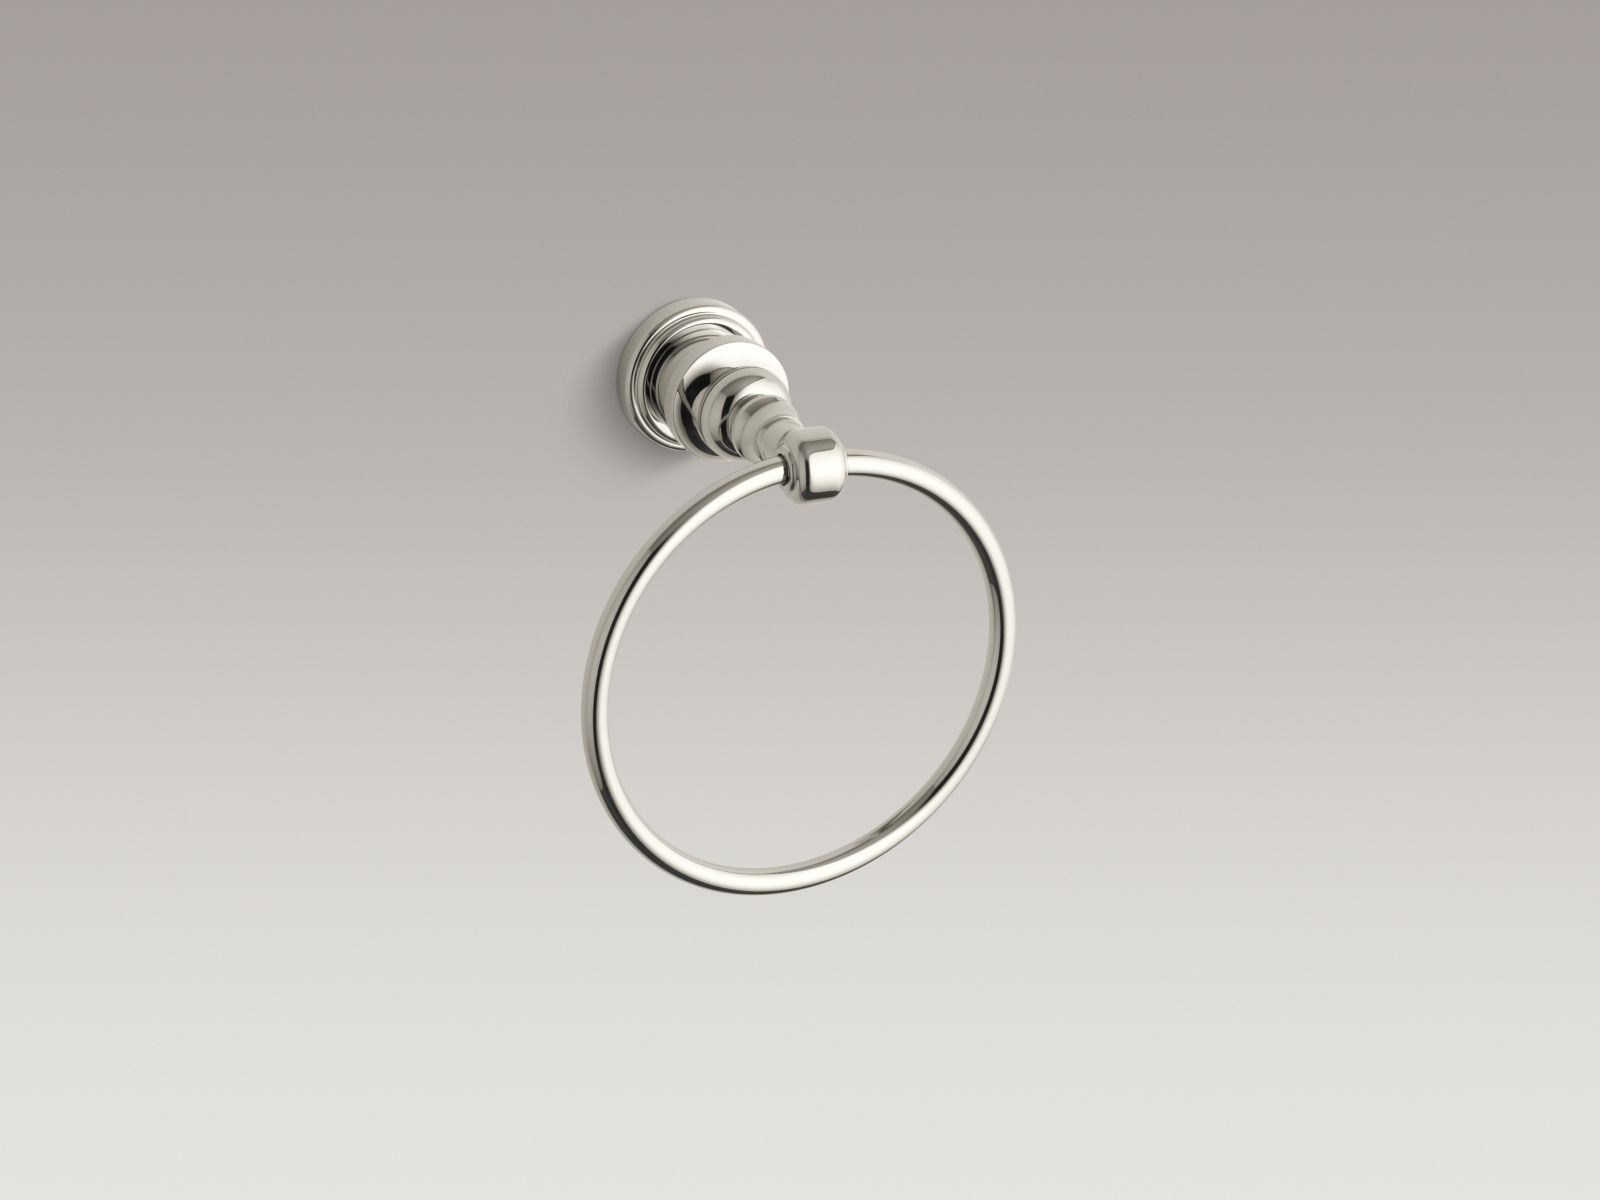 Kohler K-6817-SN IV Georges Brass Towel Ring Vibrant Polished Nickel